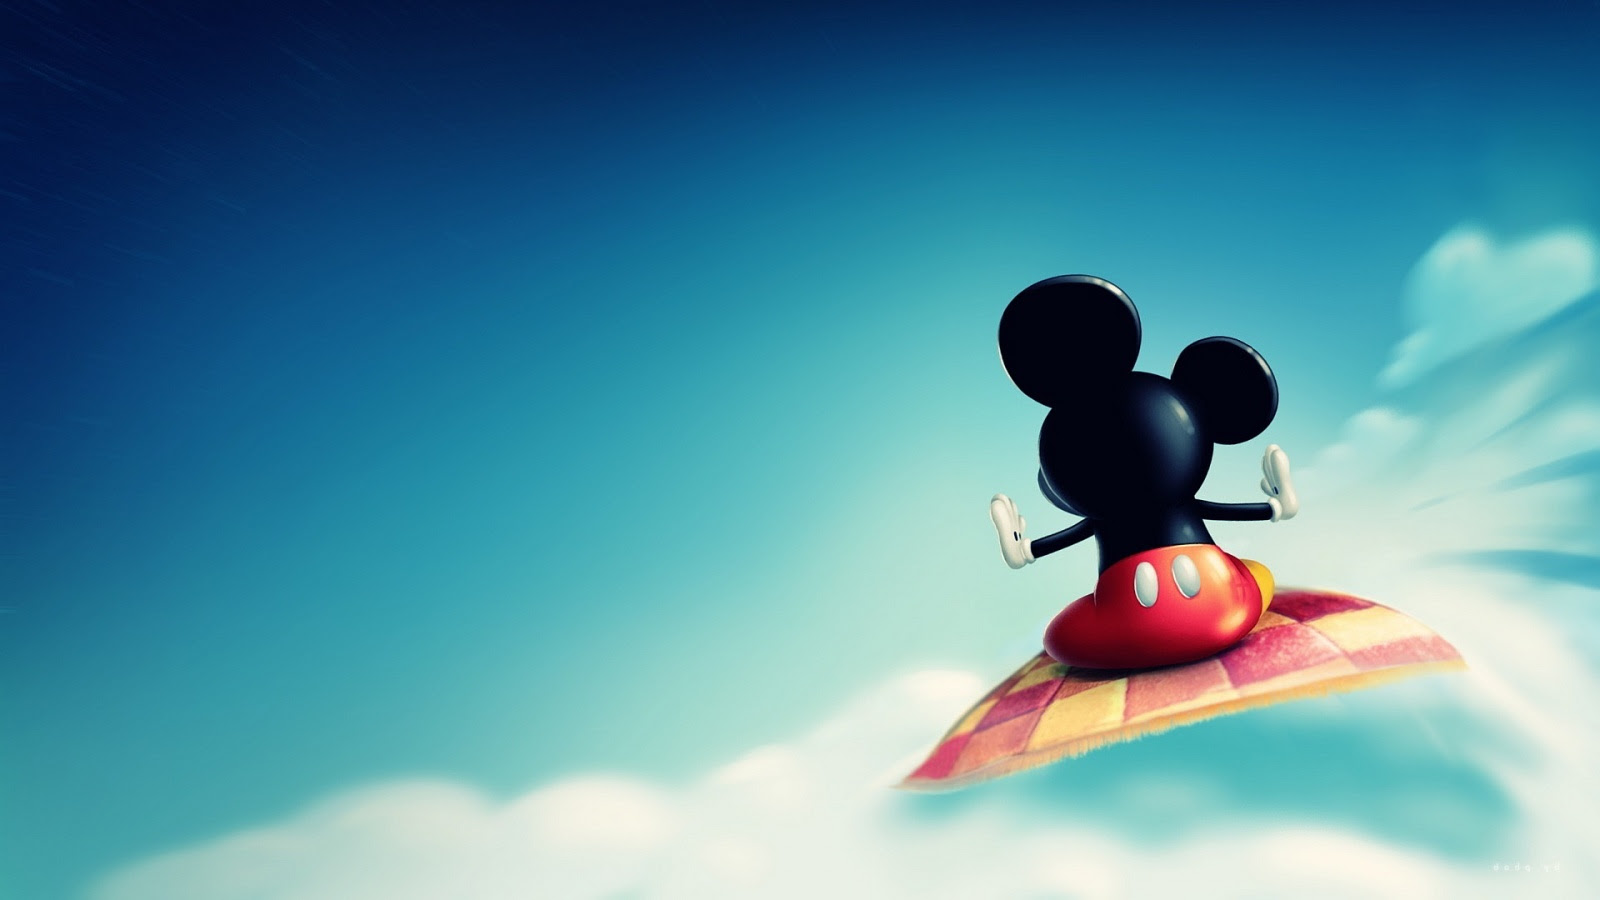 Mitomania Dc Disney Wallpapers Hd Desktop Wallpapers Mickey Mouse